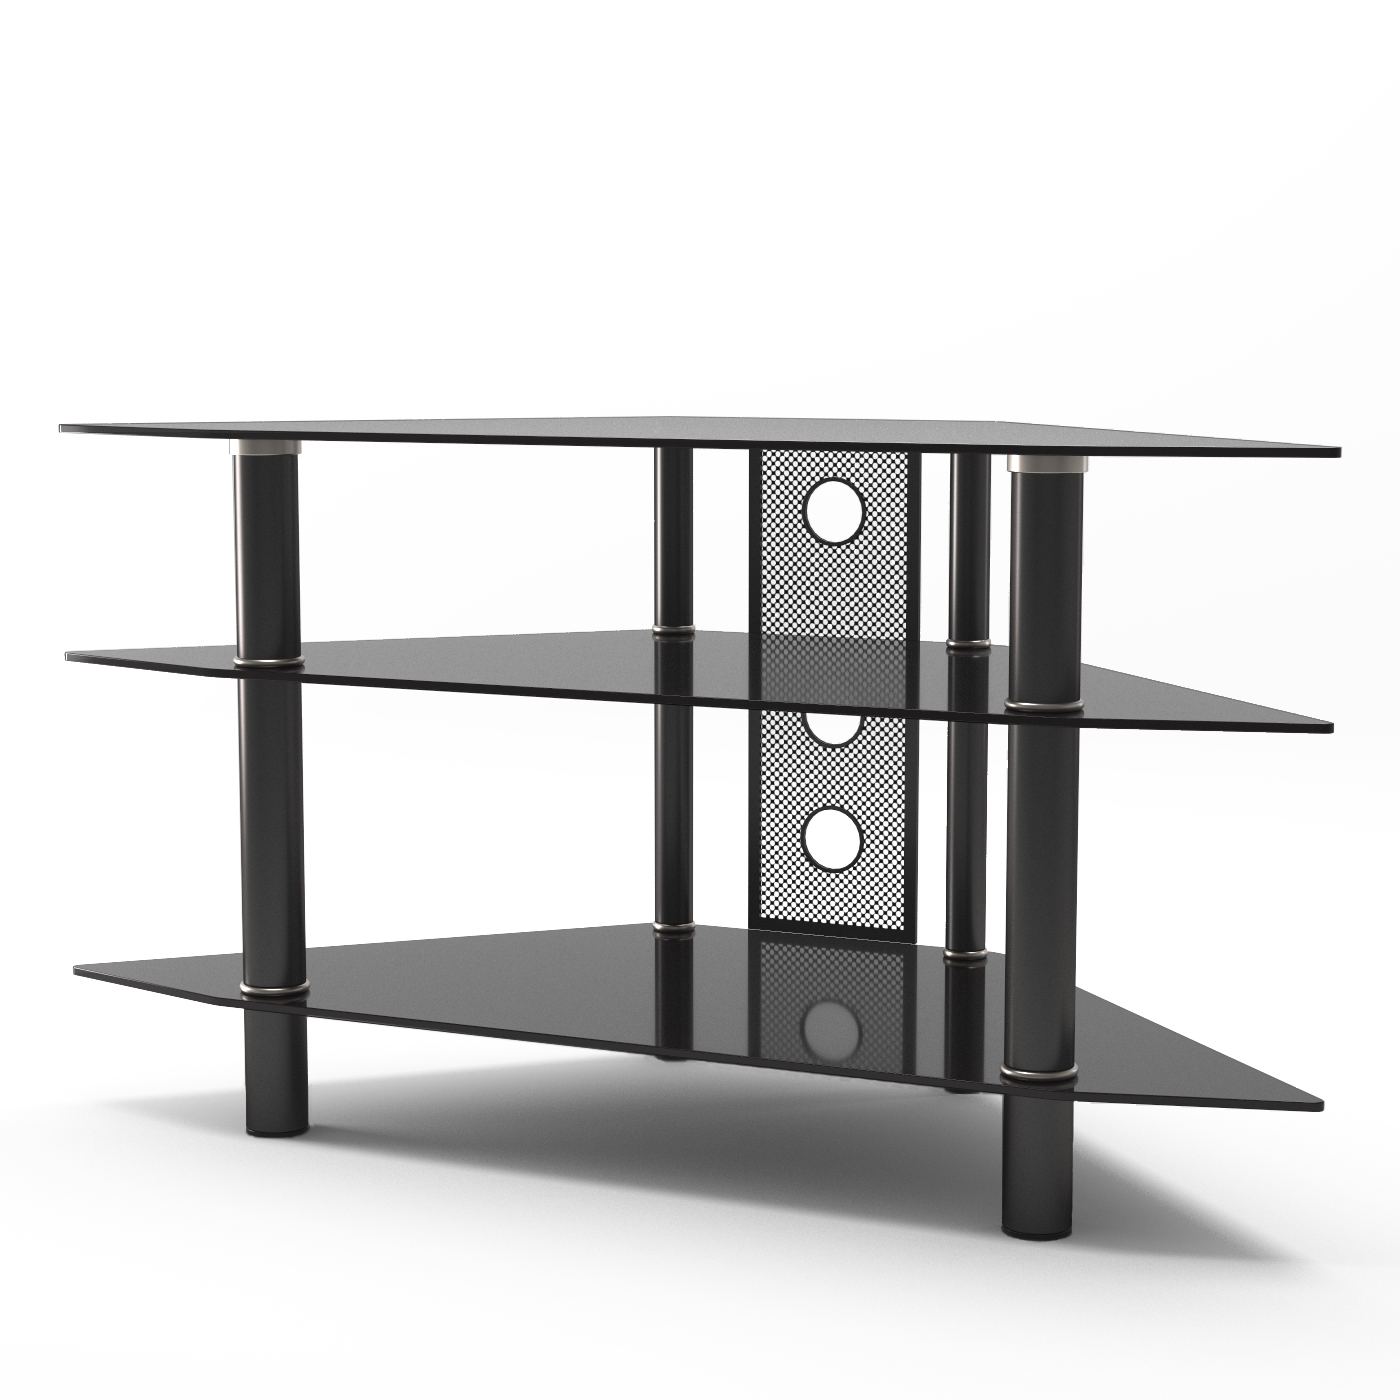 Ruby 44 Inch Corner Glass TV Stand in Black